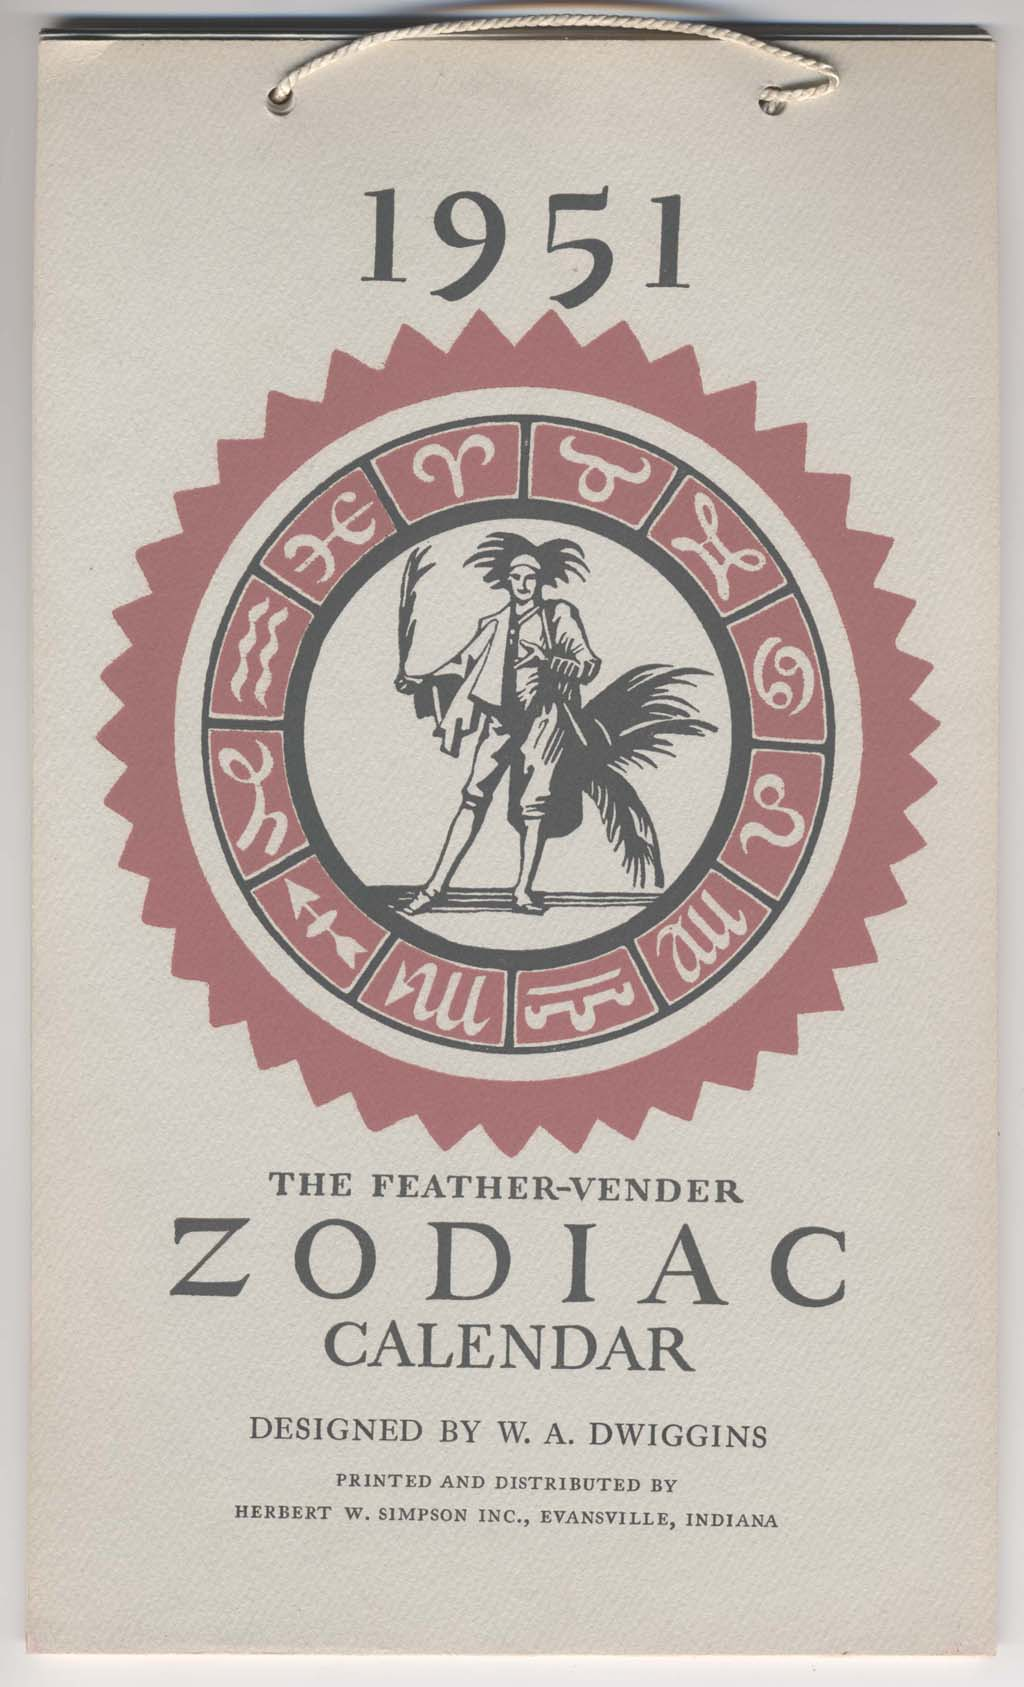 Cover of The Feather-Vender Zodiac Calendar published by Herbert W. Simpson, Inc. (1951). Illusration, ornament, lettering and design by W.A. Dwiggins.